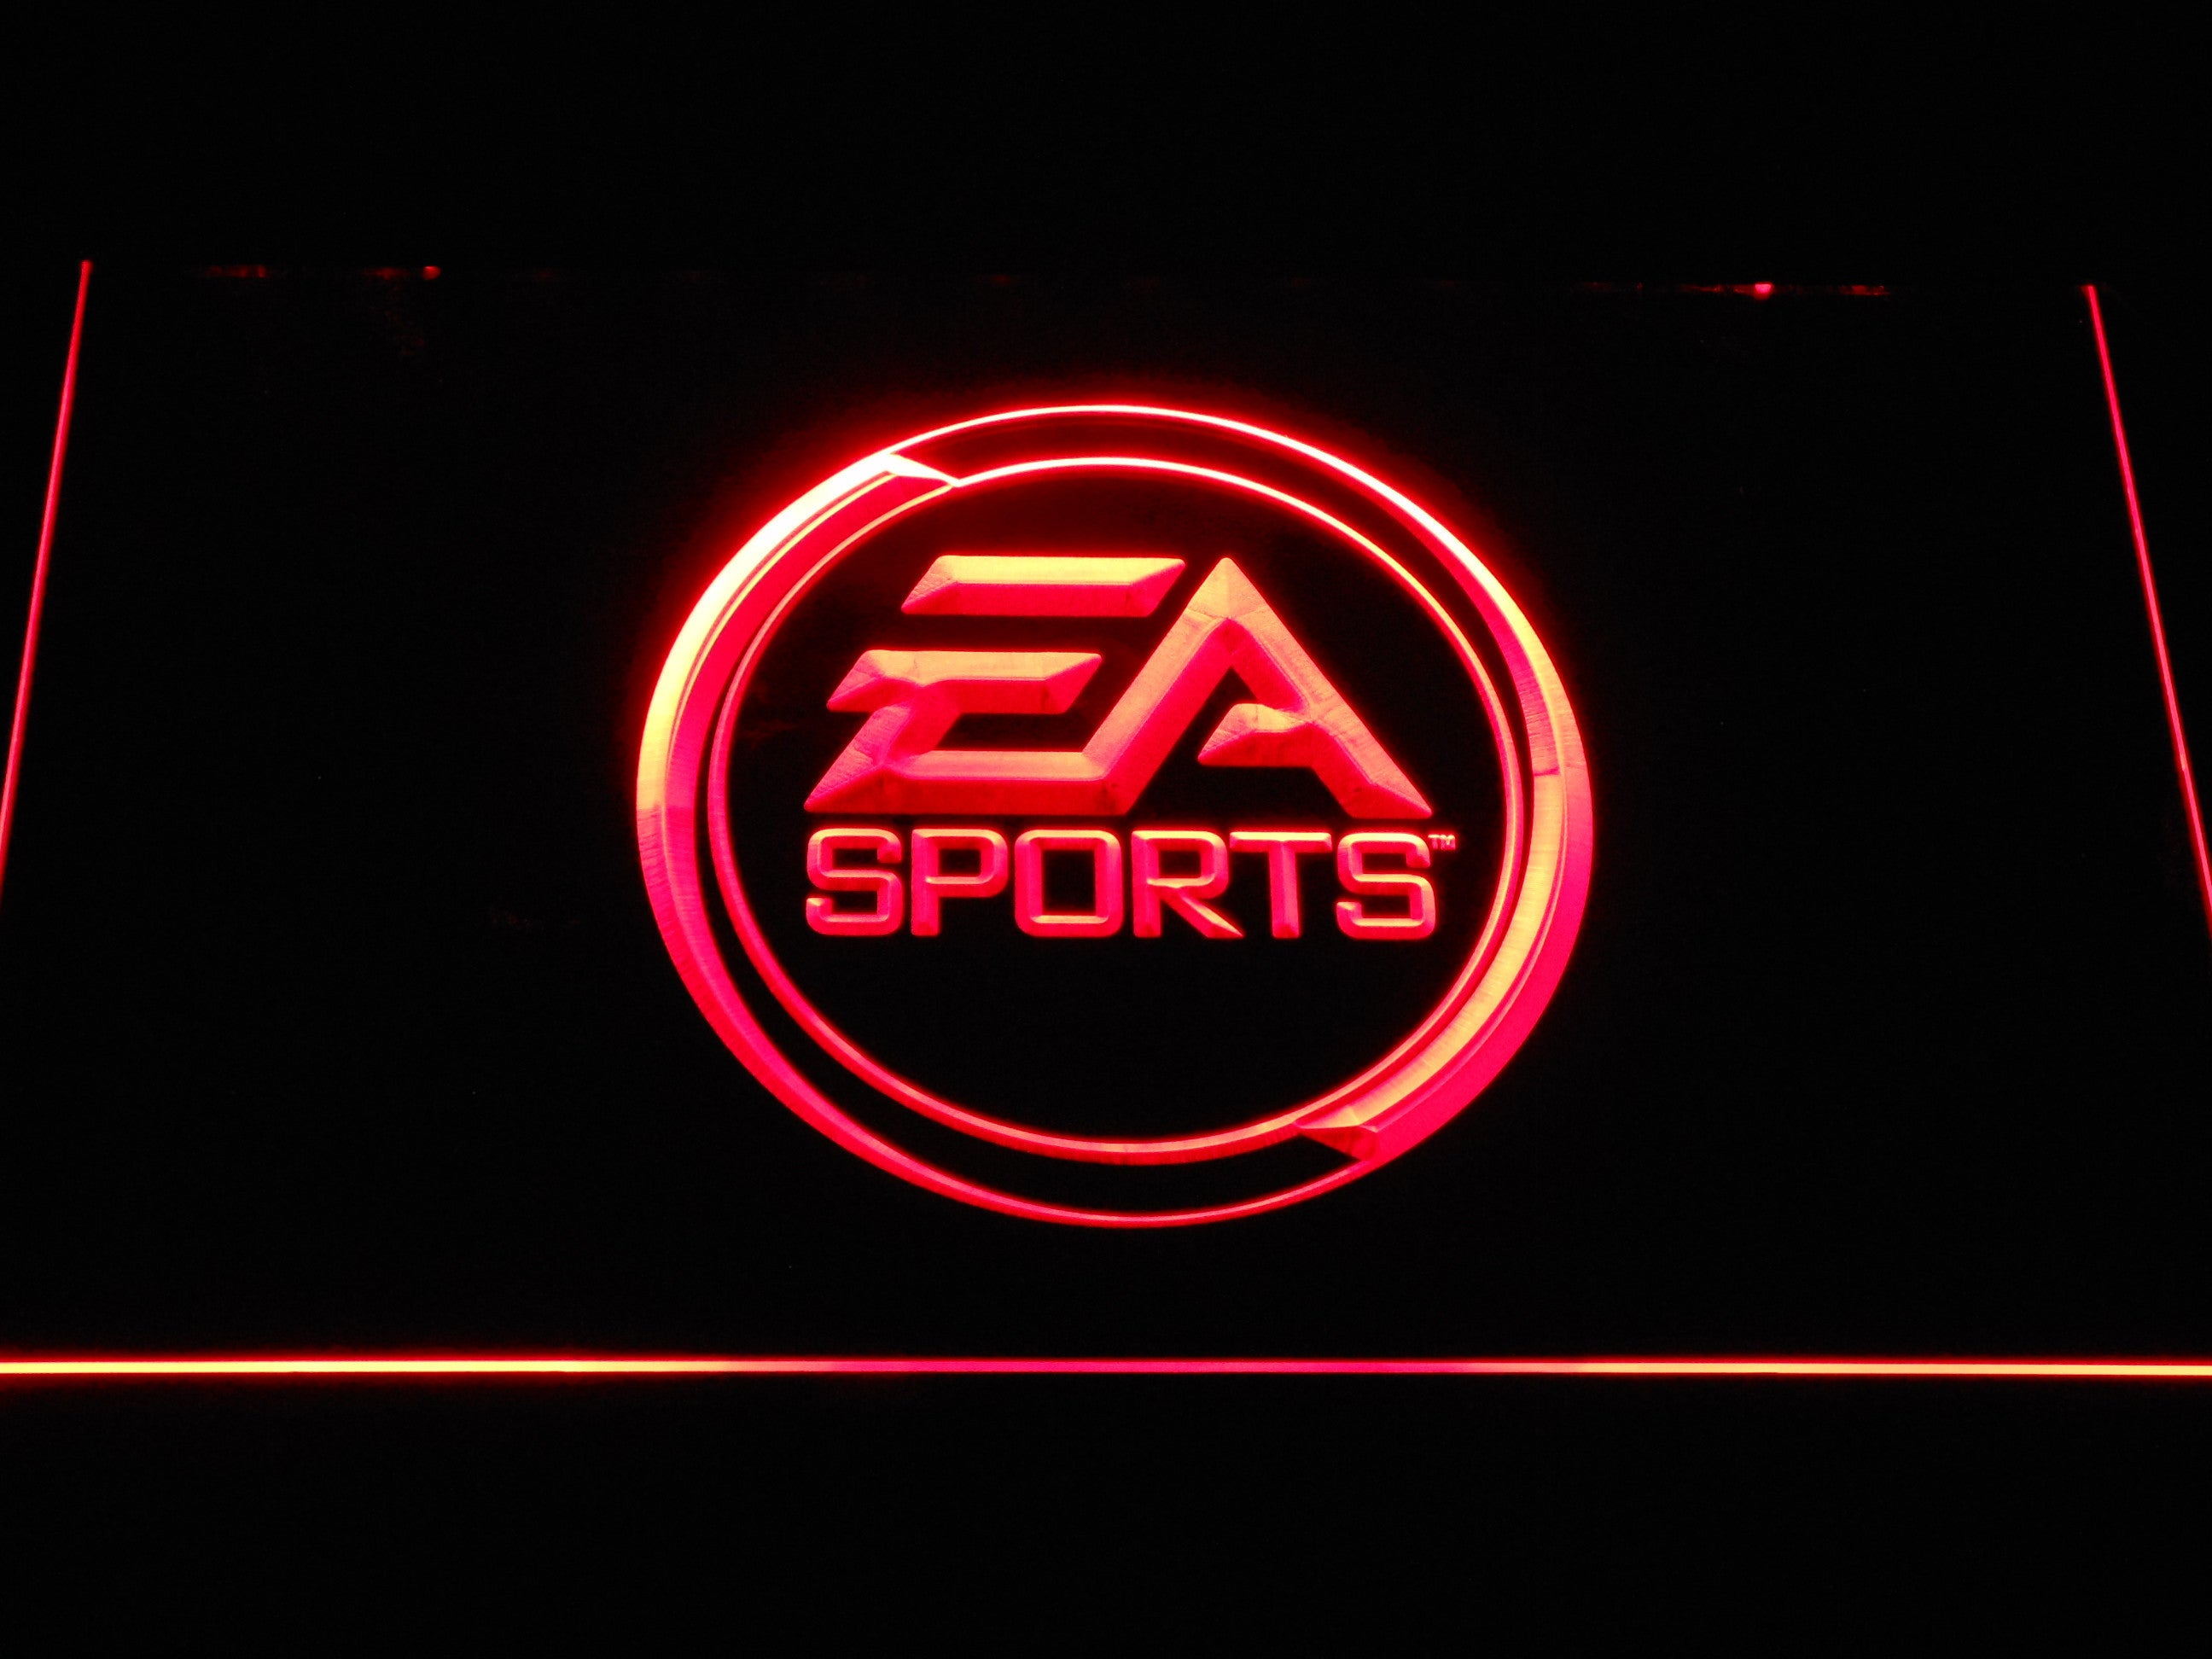 sports sign neon ea led signs games safespecial toys